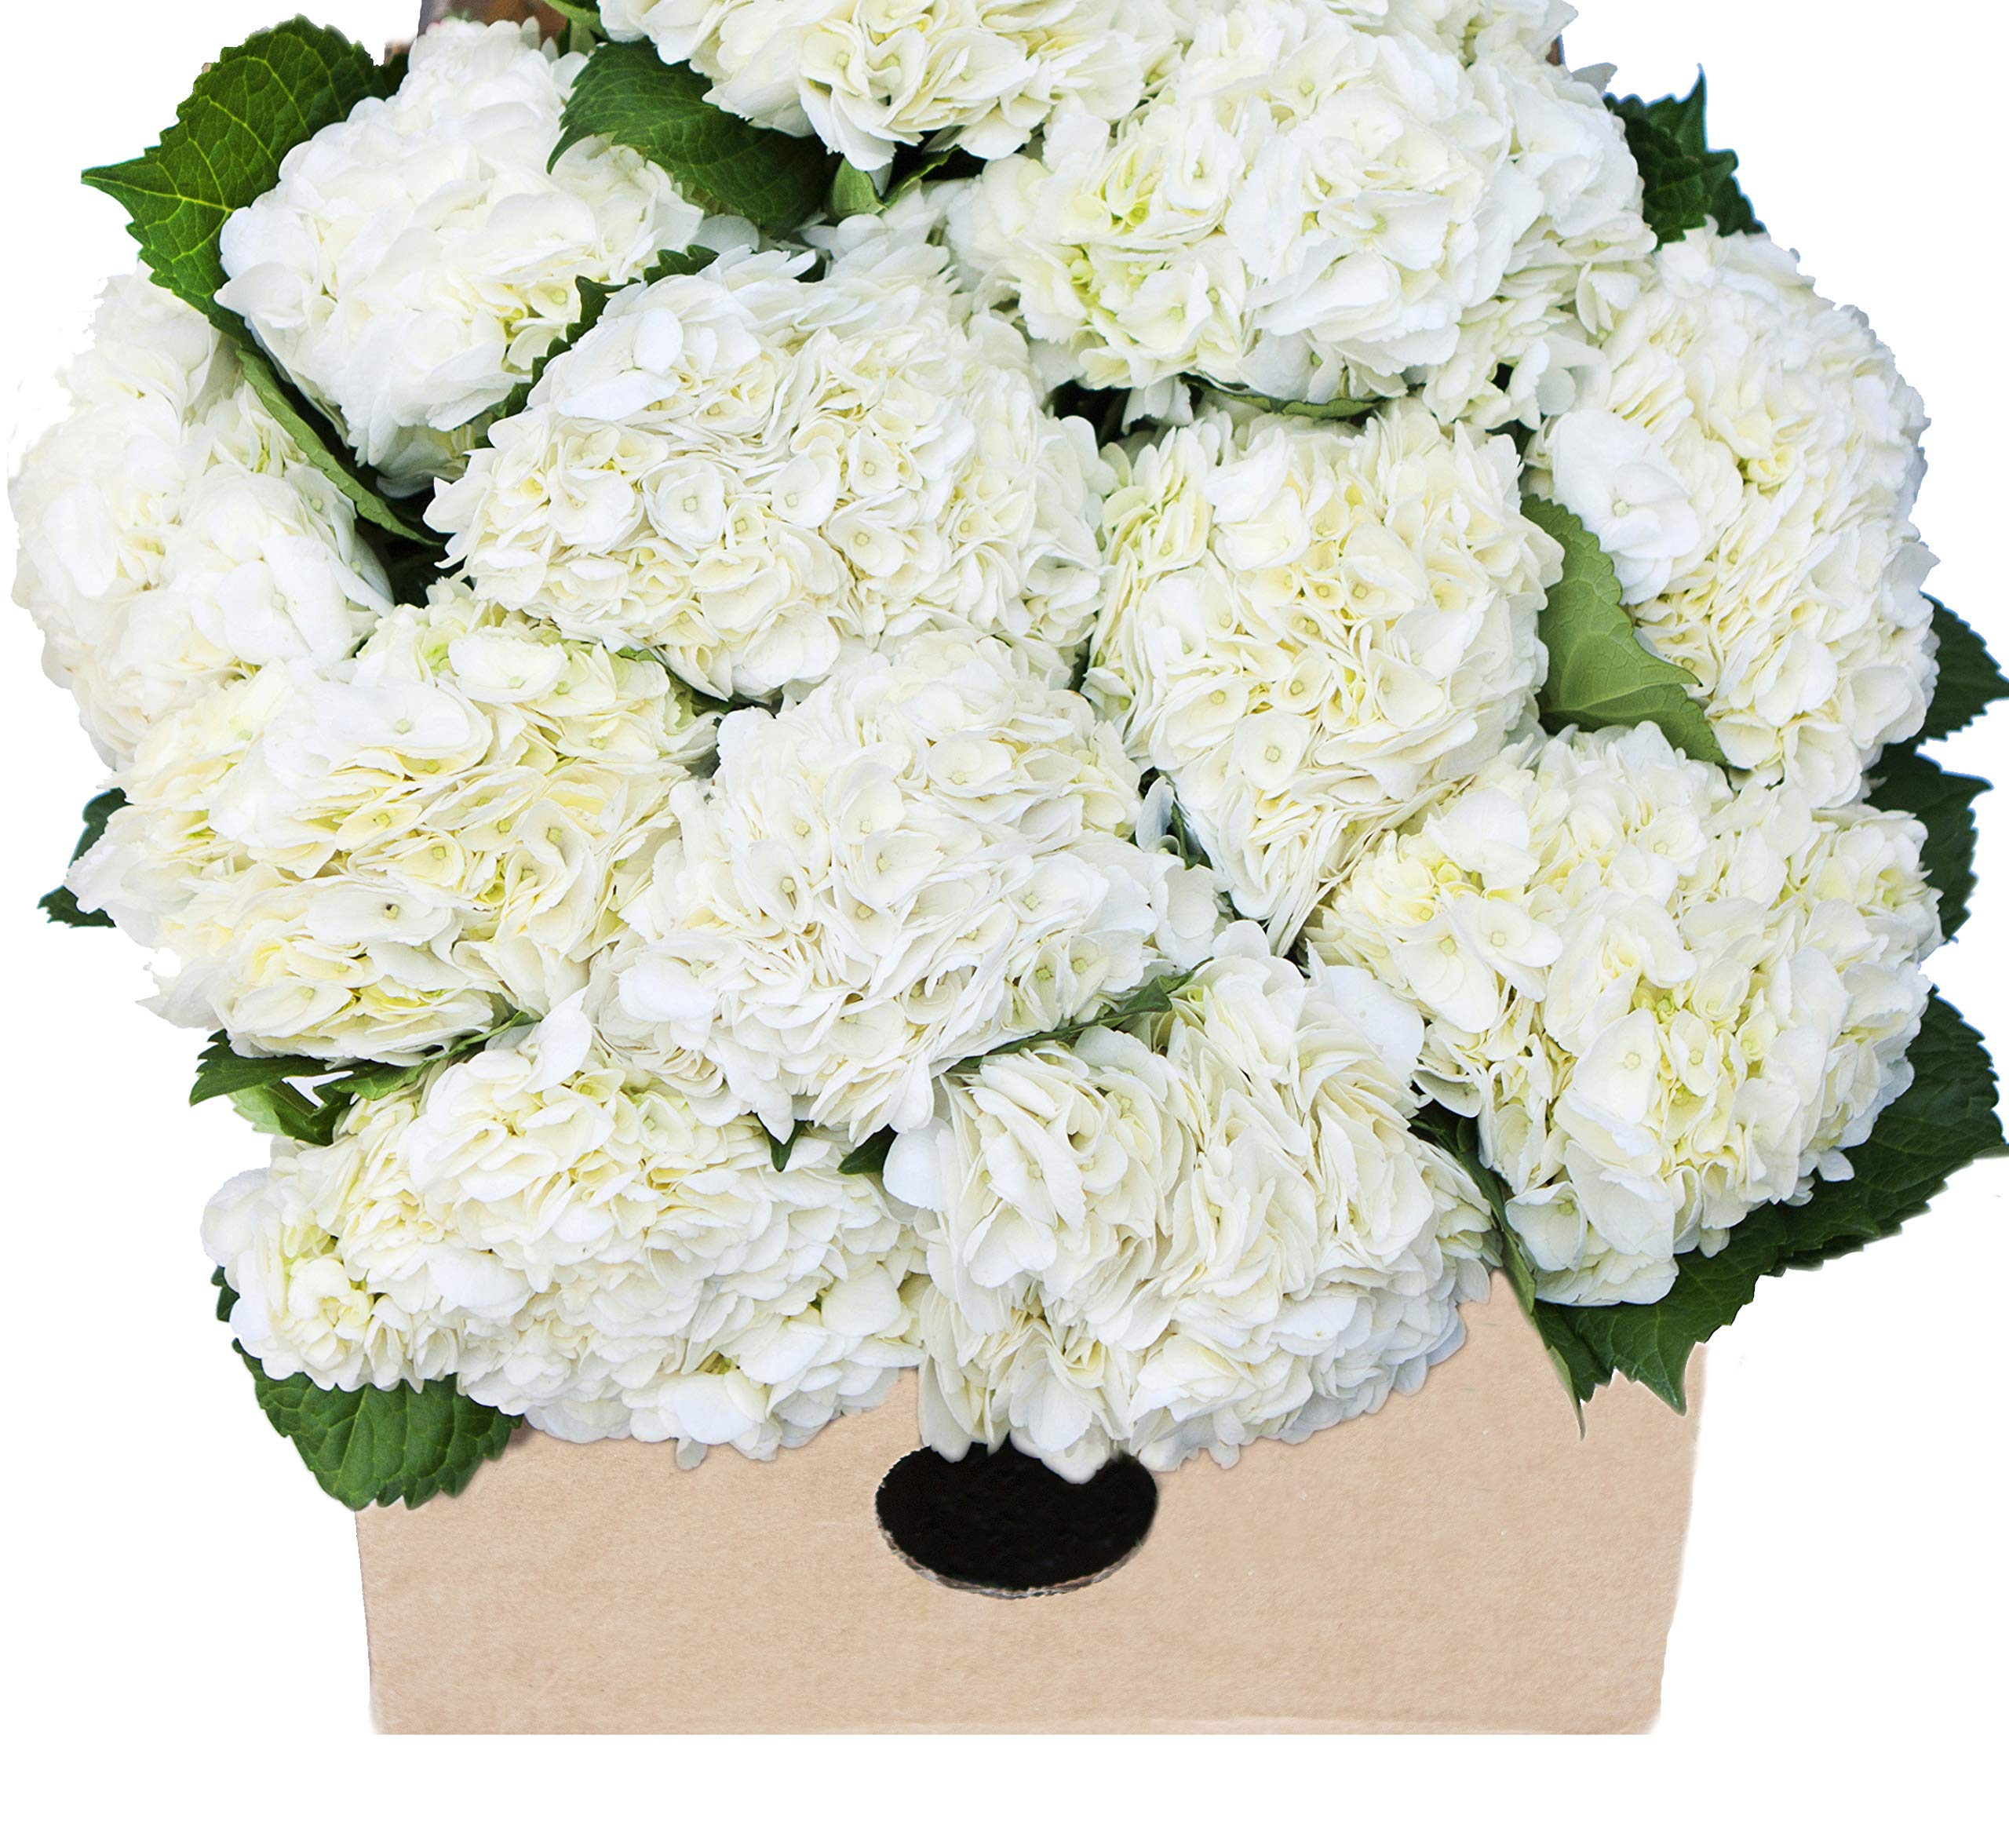 Blooms2Door 30 White Hydrangeas (Farm-Fresh, Naturally Colored, Premium Quality) by Blooms2Door